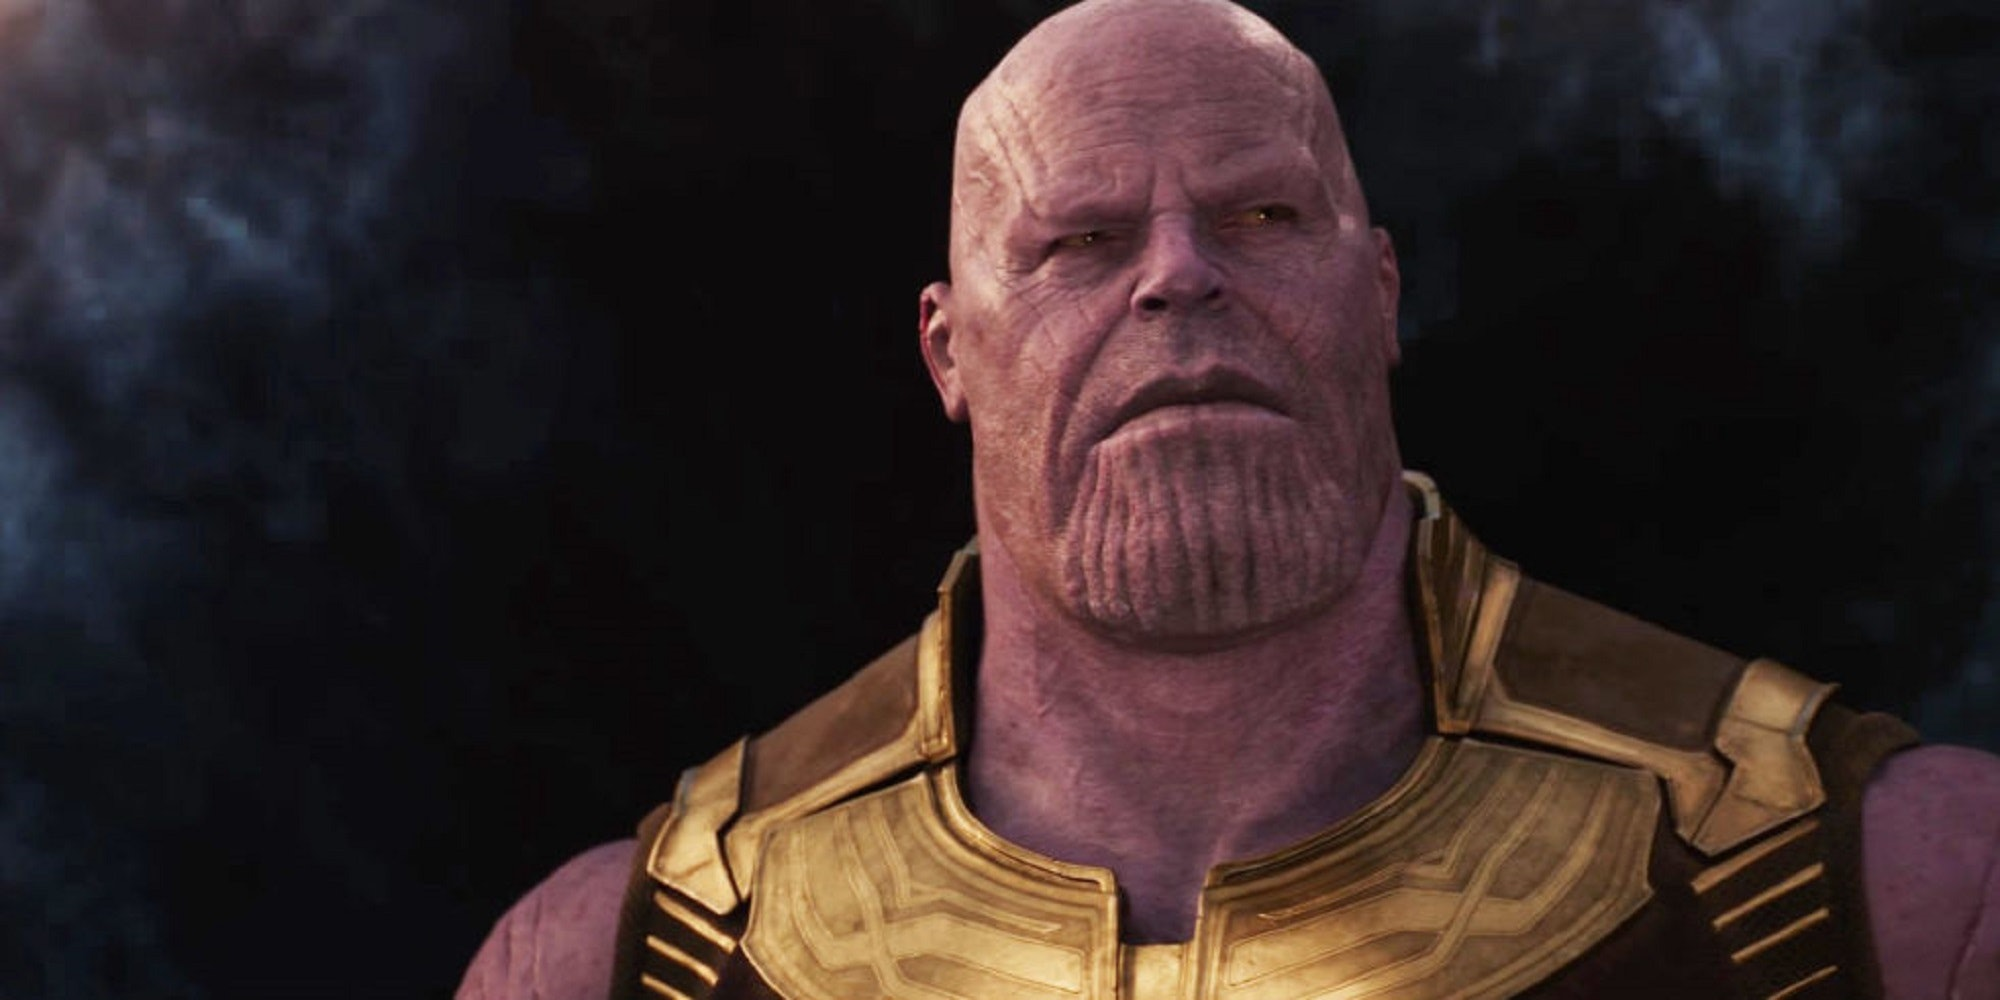 2018: Thanos retrieves all six Infinity Stones and successfully wipes out half of humanity. But Nick Fury has a back-up plan